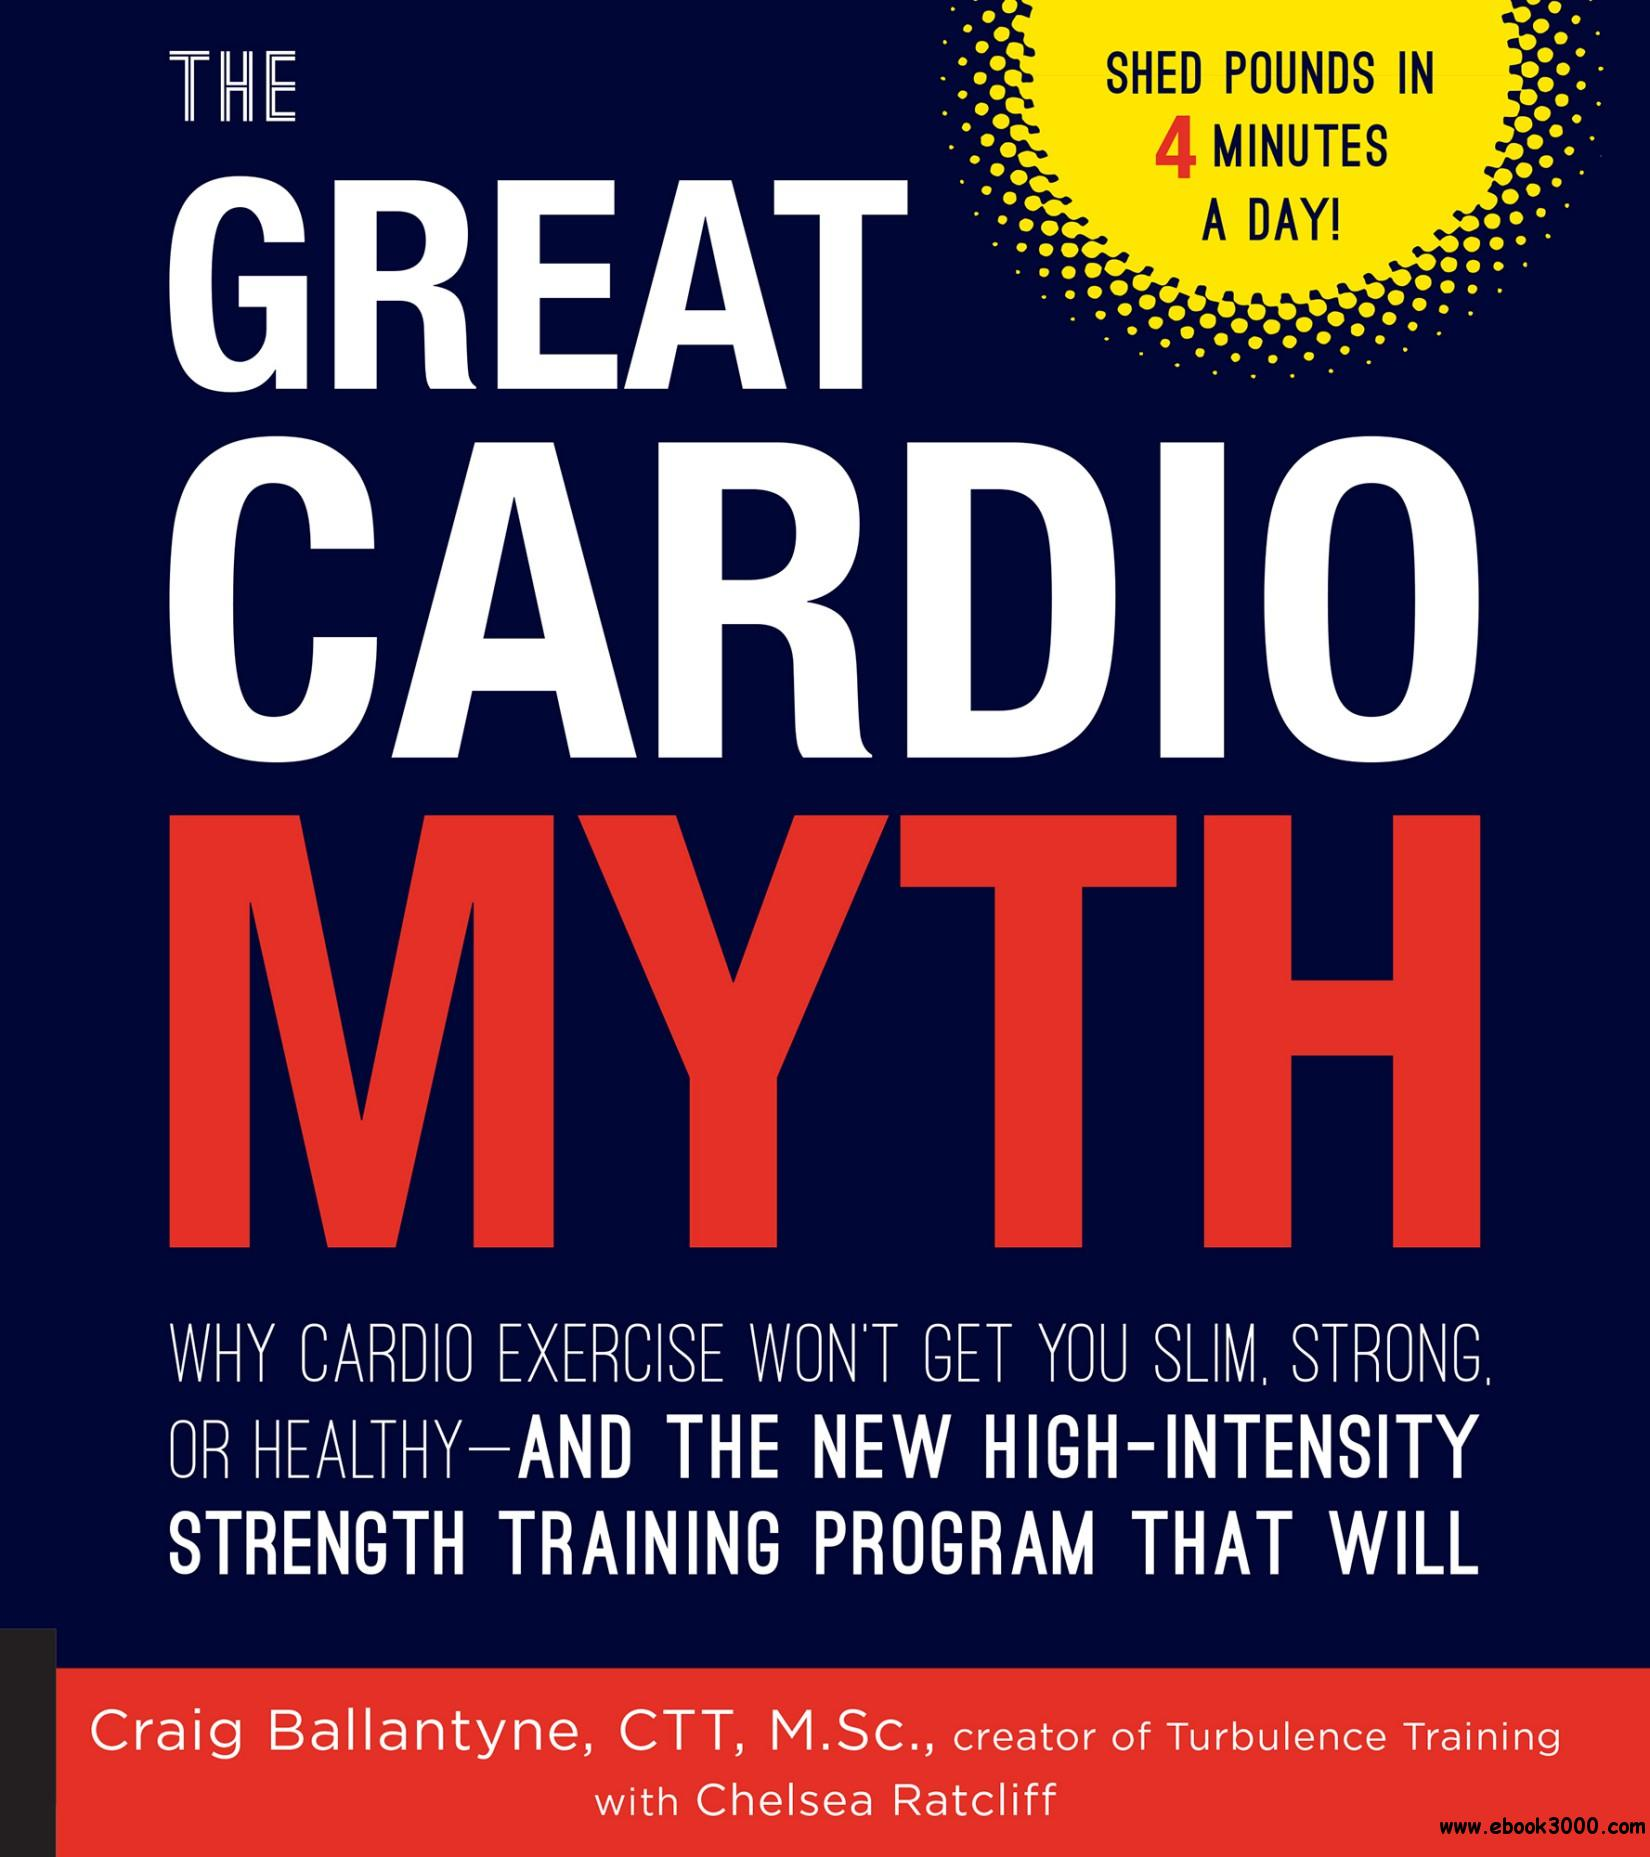 The Great Cardio Myth: Why Cardio Exercise Won't Get You Slim, Strong, or Healthy